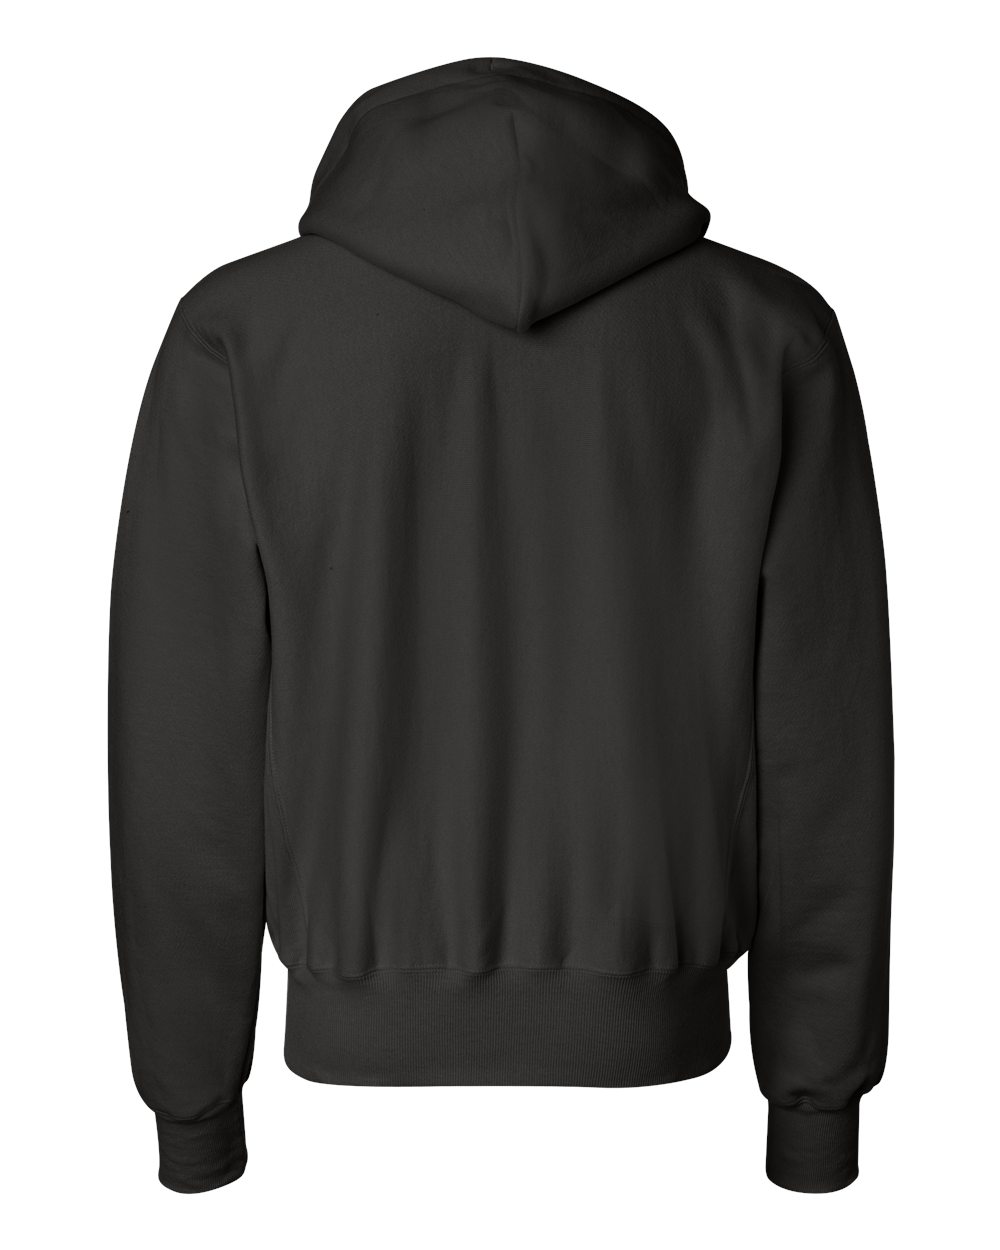 Champion-Mens-Reverse-Weave-Hooded-Pullover-Sweatshirt-S101-up-to-3XL thumbnail 10